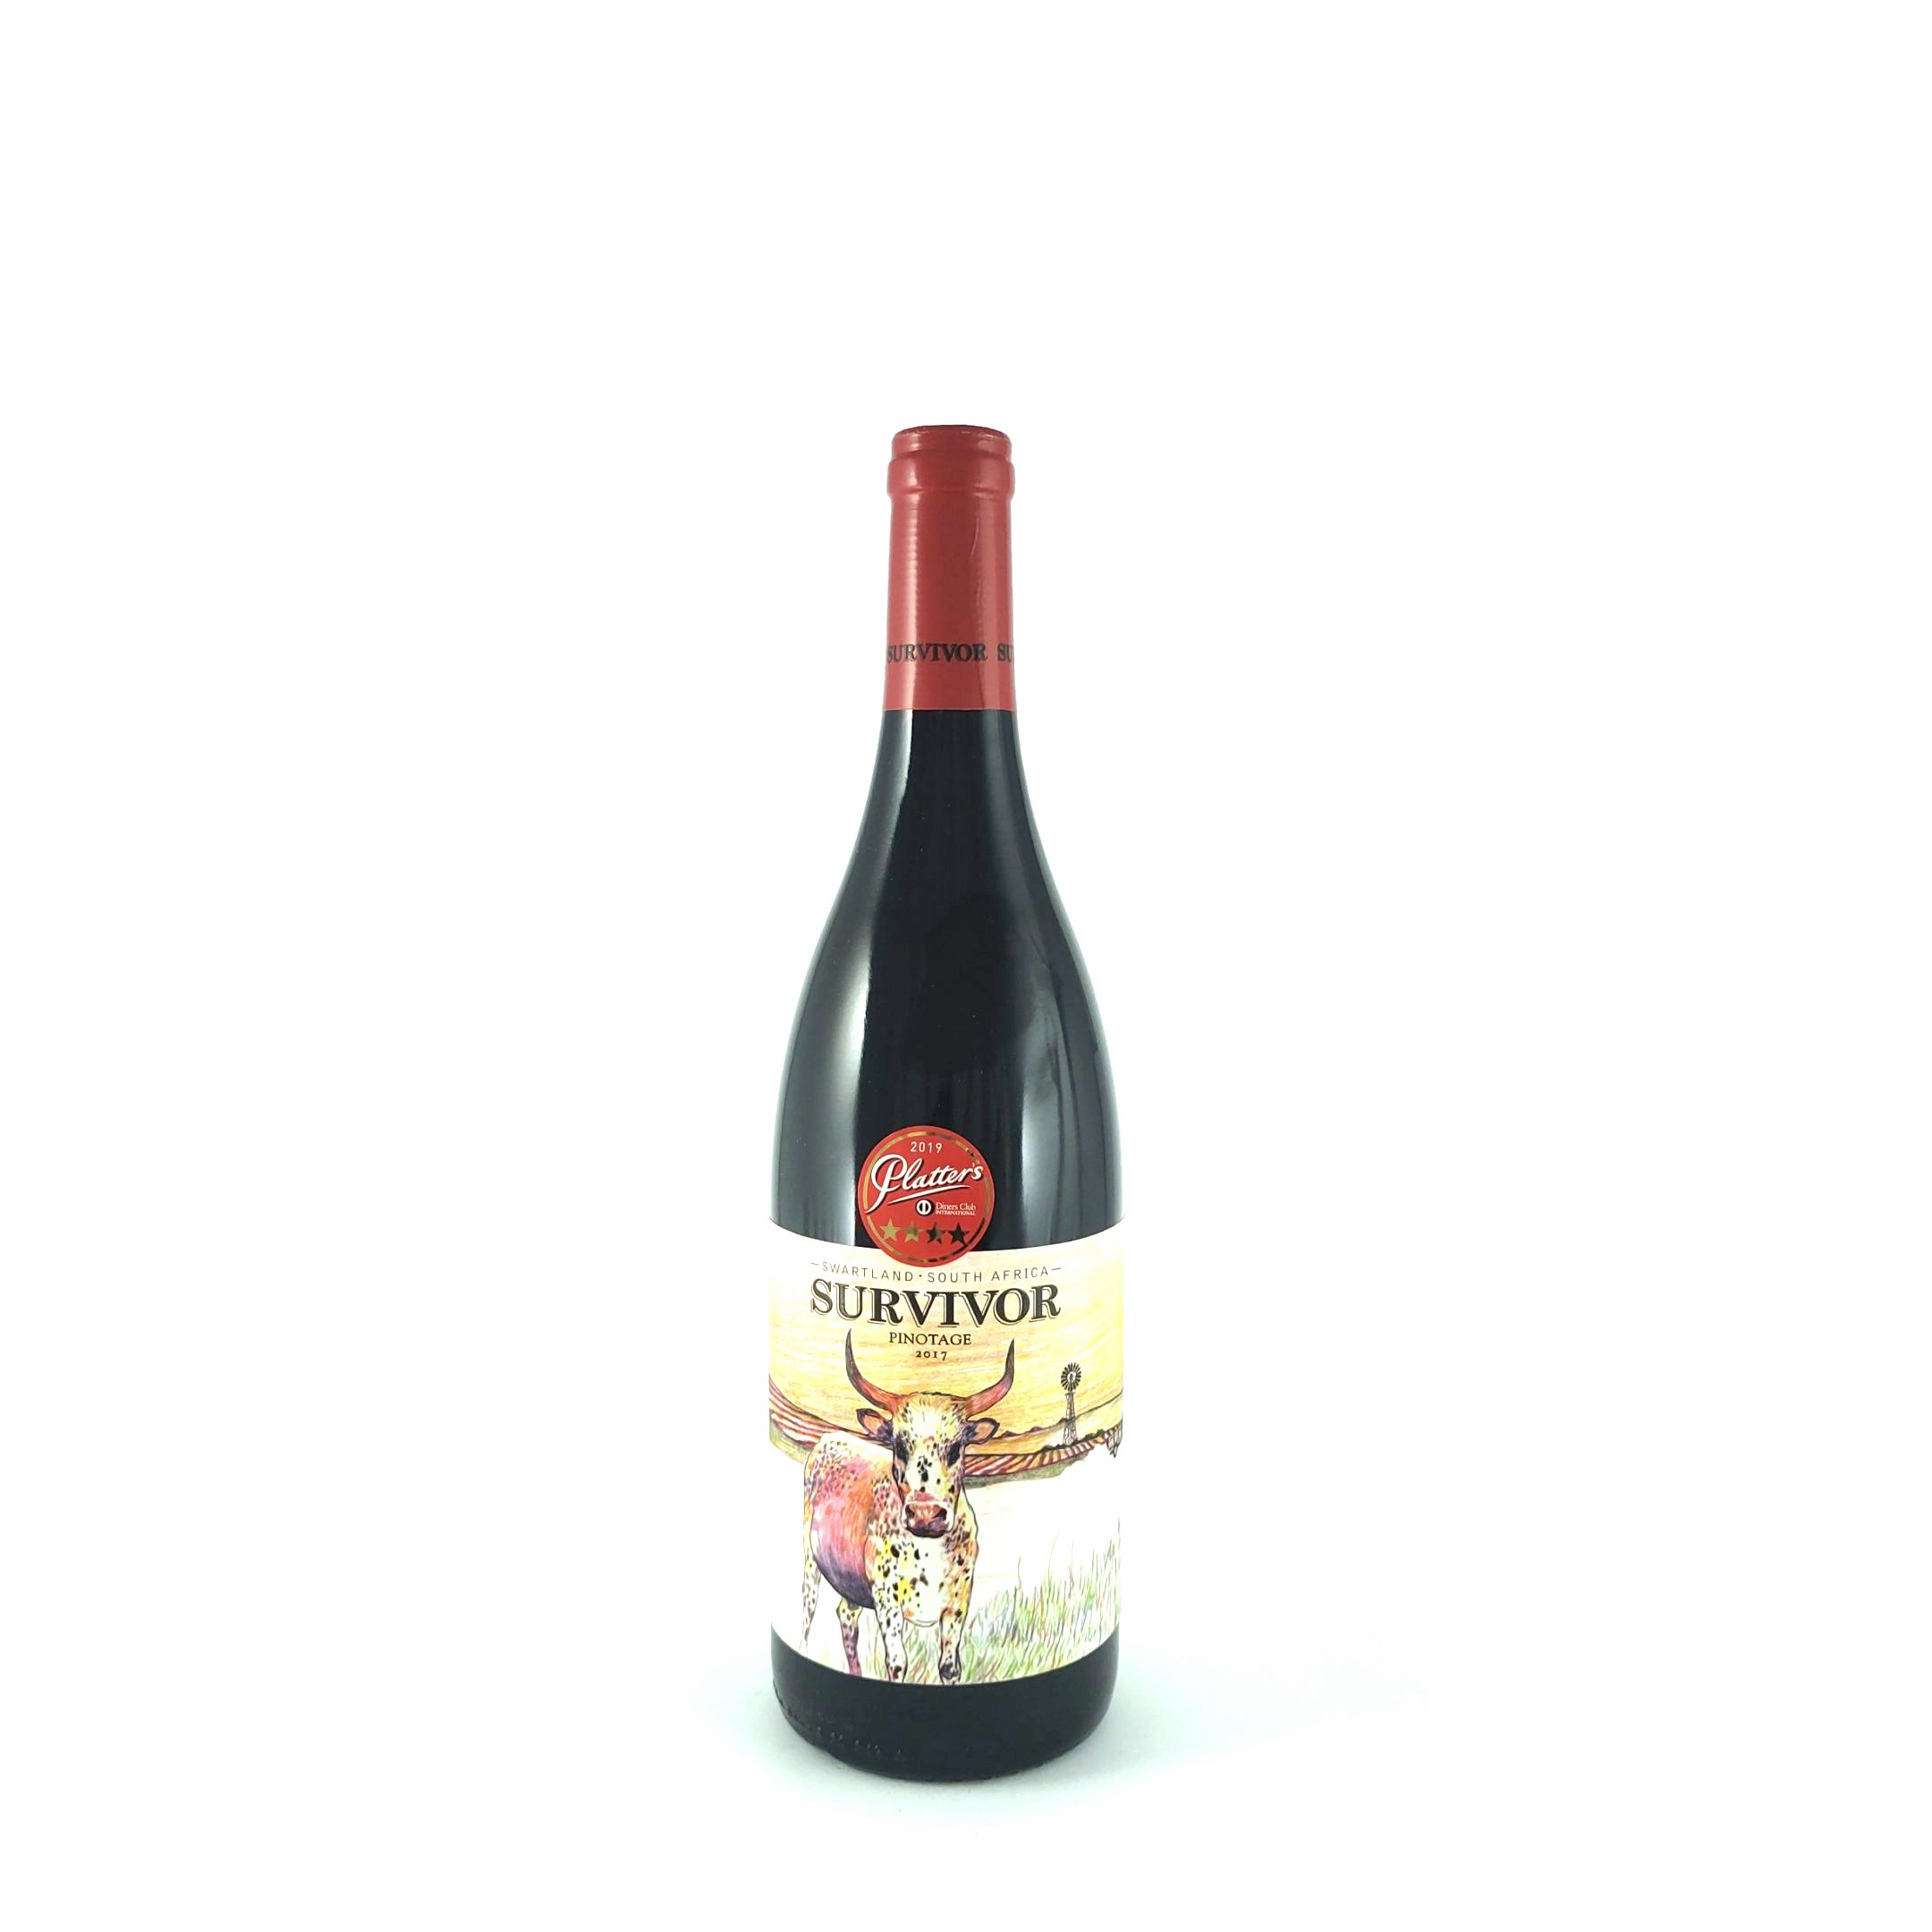 Survivor – Pinotage Barrel Select 2018